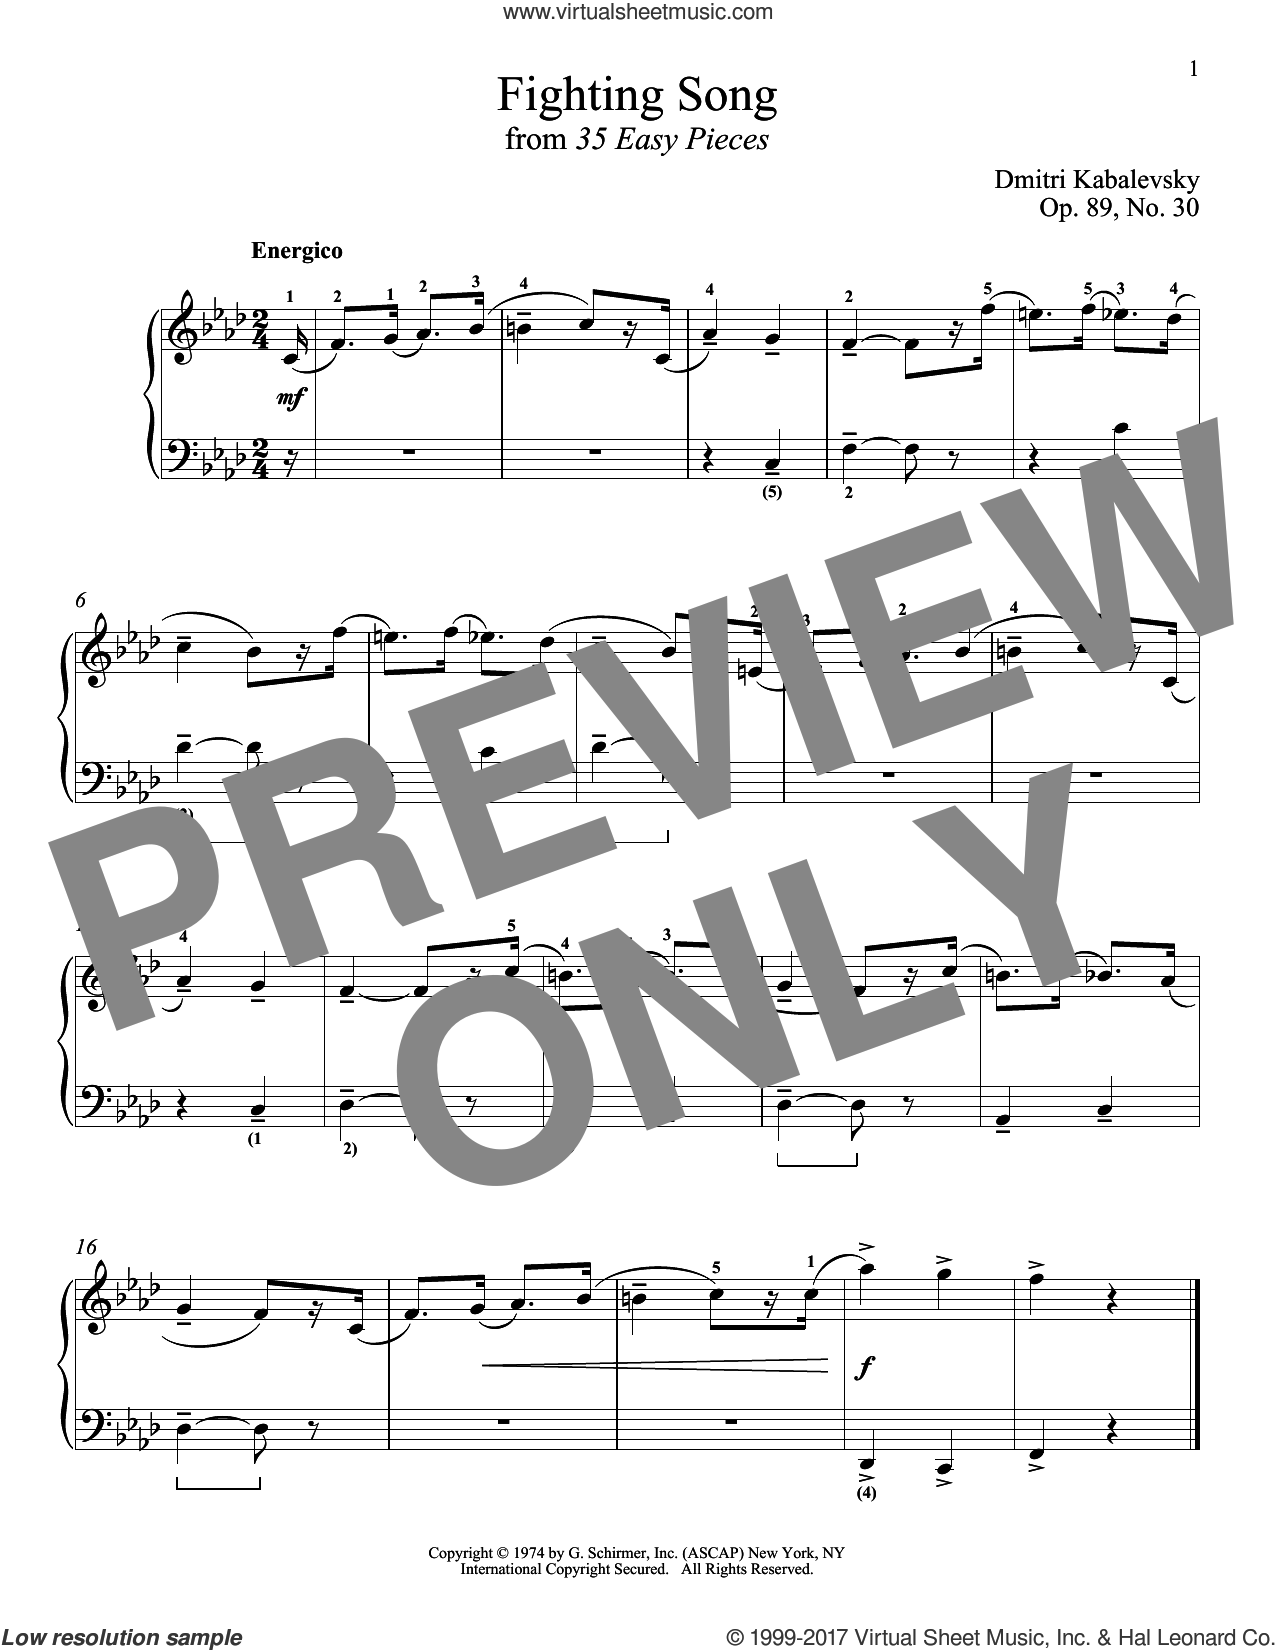 Fighting Song, Op. 89, No. 30 sheet music for piano solo by Dmitri Kabalevsky, classical score, intermediate skill level